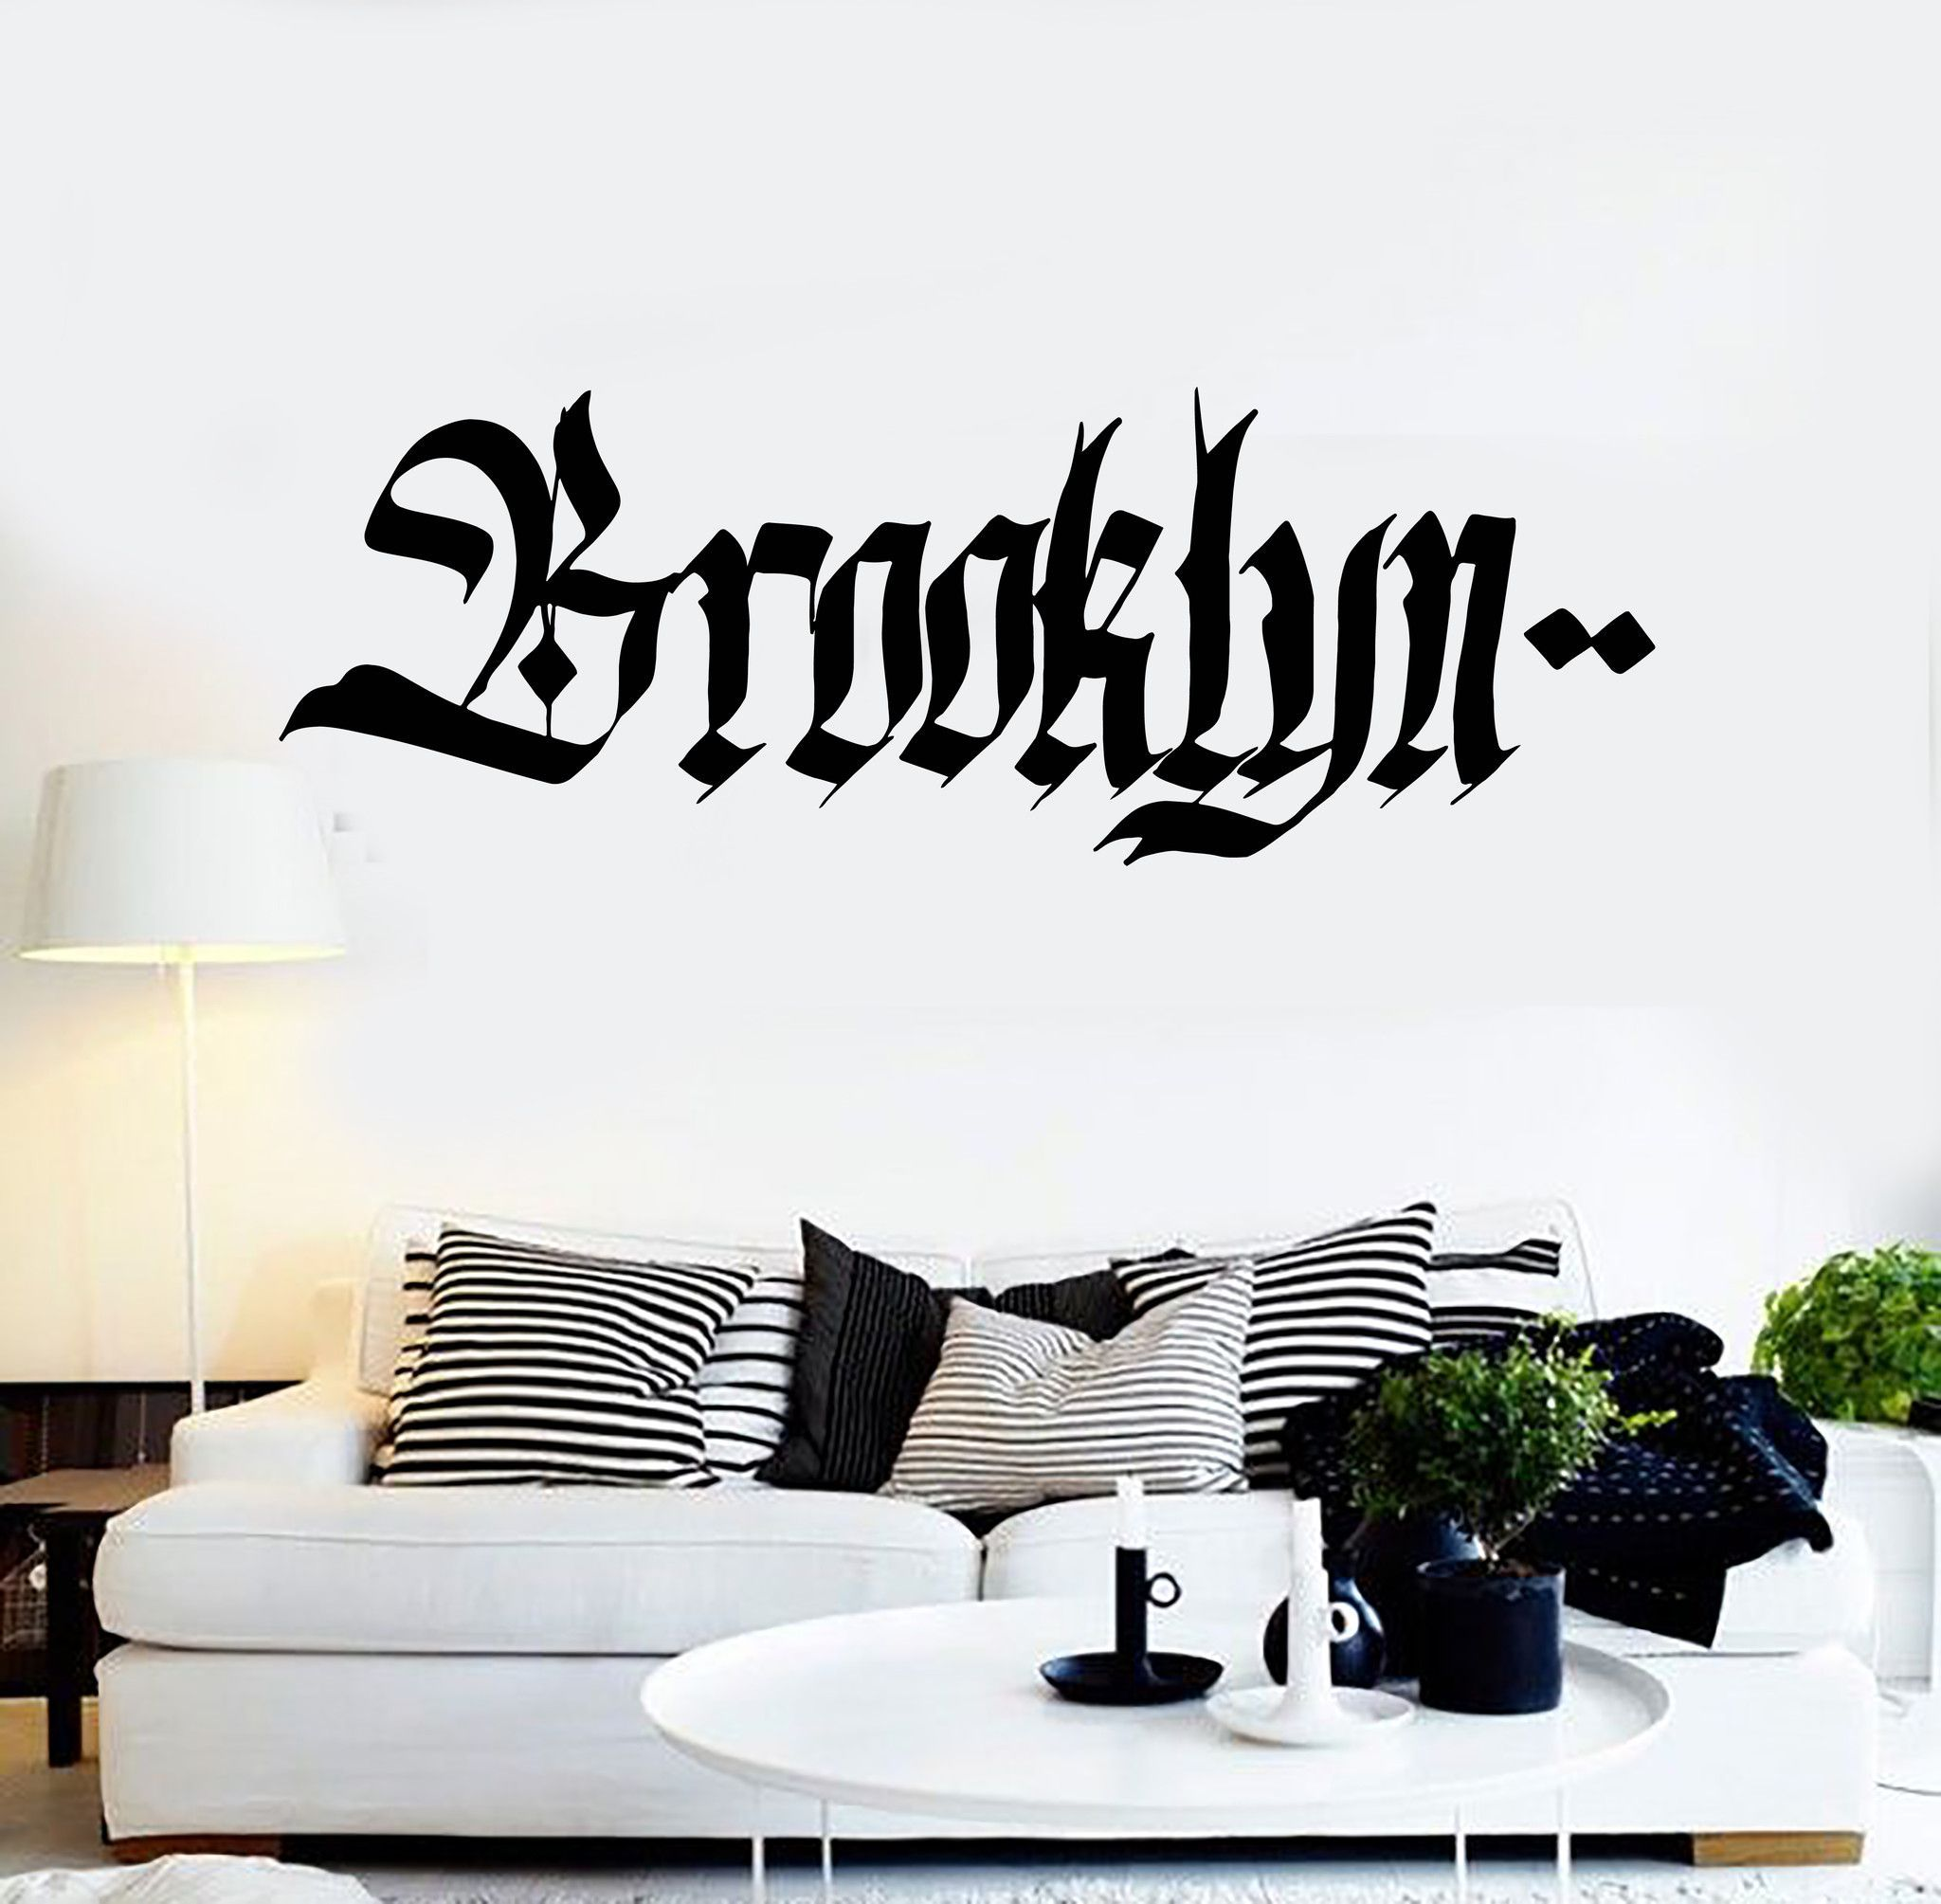 Vinyl wall decal brooklyn graffiti word teen room new york vinyl wall decal brooklyn graffiti word teen room new york stickers ig4345 amipublicfo Gallery